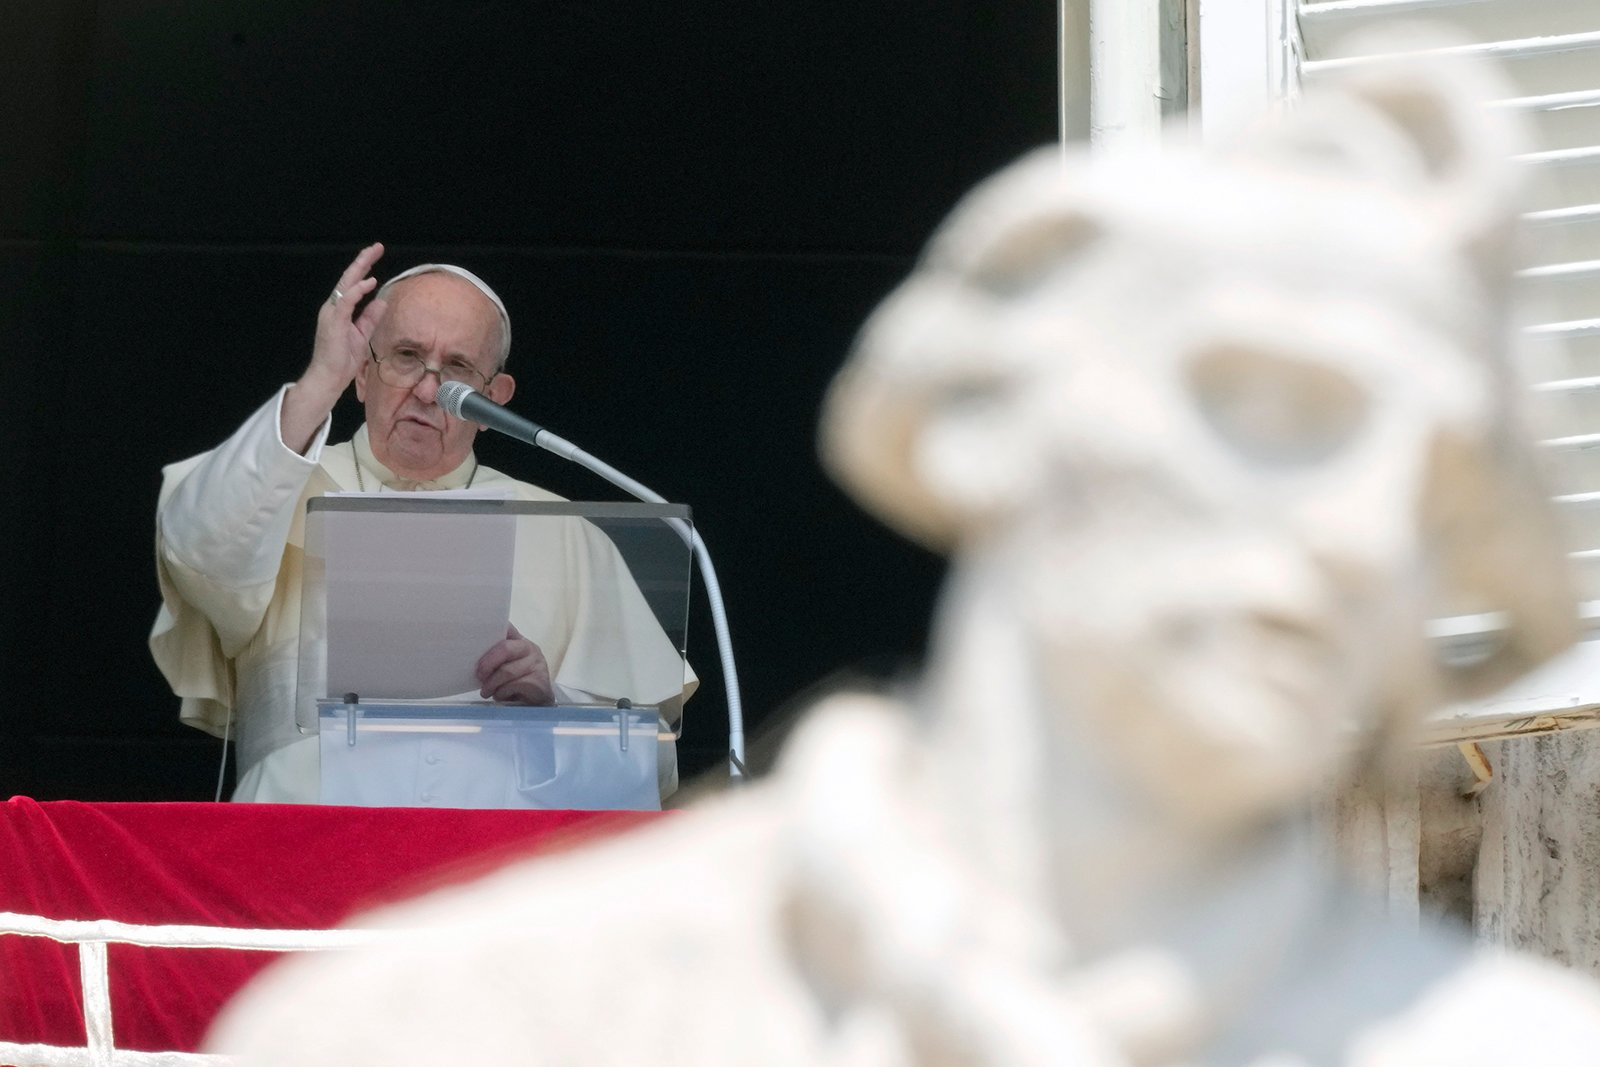 """Pope Francis delivers his blessing as he recites the Angelus noon prayer from the window of his studio overlooking St. Peter's Square, at the Vatican, Sunday, Aug. 15, 2021. The pontiff said he shares """"the unanimous concern for the situation in Afghanistan'' and expressed his closeness to the people of Haiti following Saturday's 7.2-magnitude quake. (AP Photo/Andrew Medichini)"""